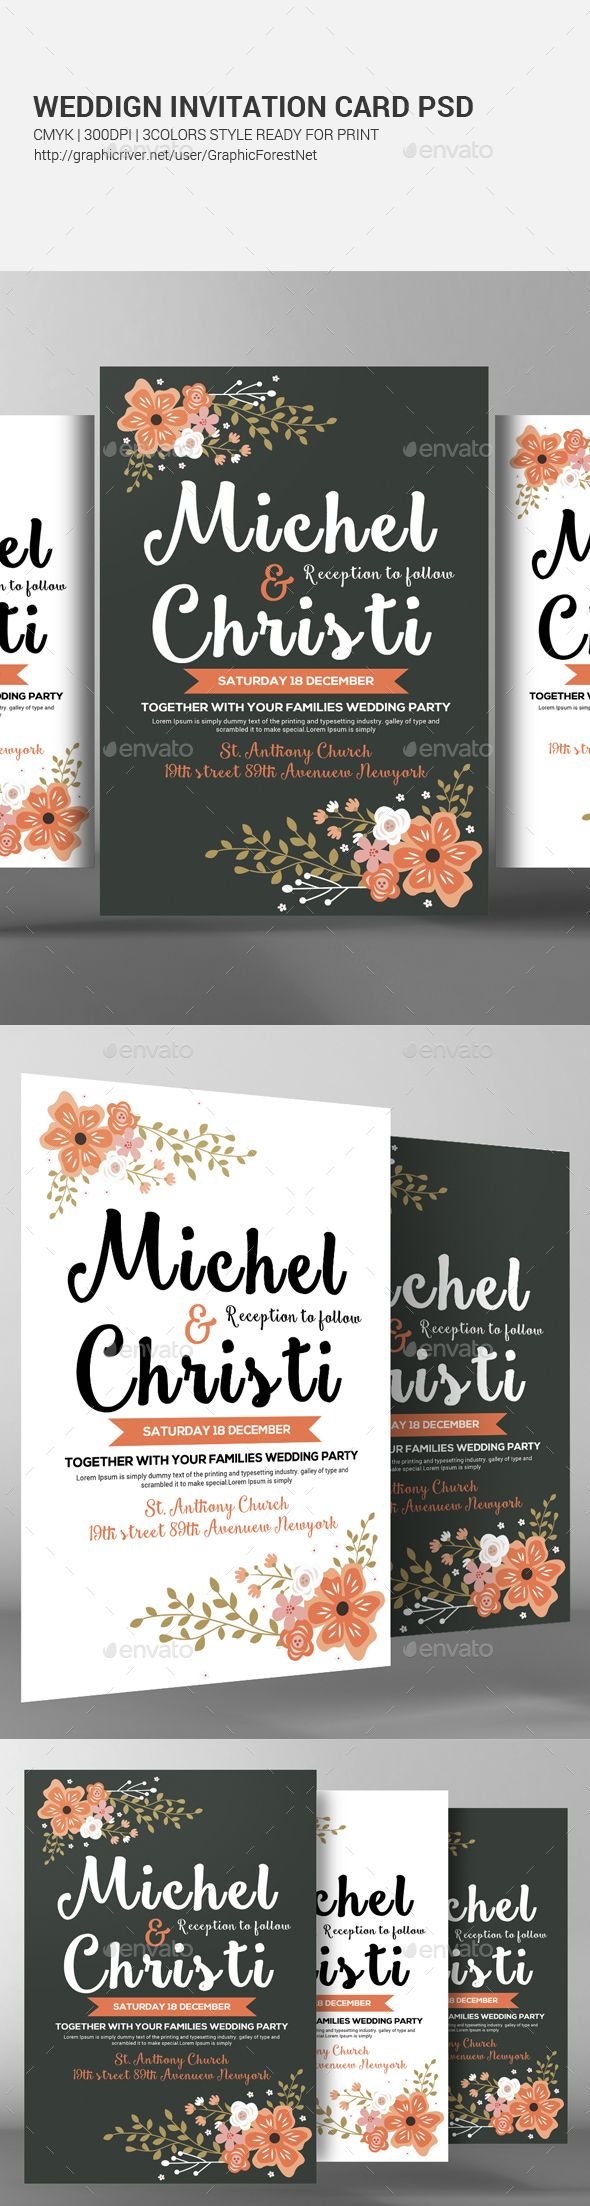 Wedding Invitation Card Psd | Wedding invitation cards, Template and ...